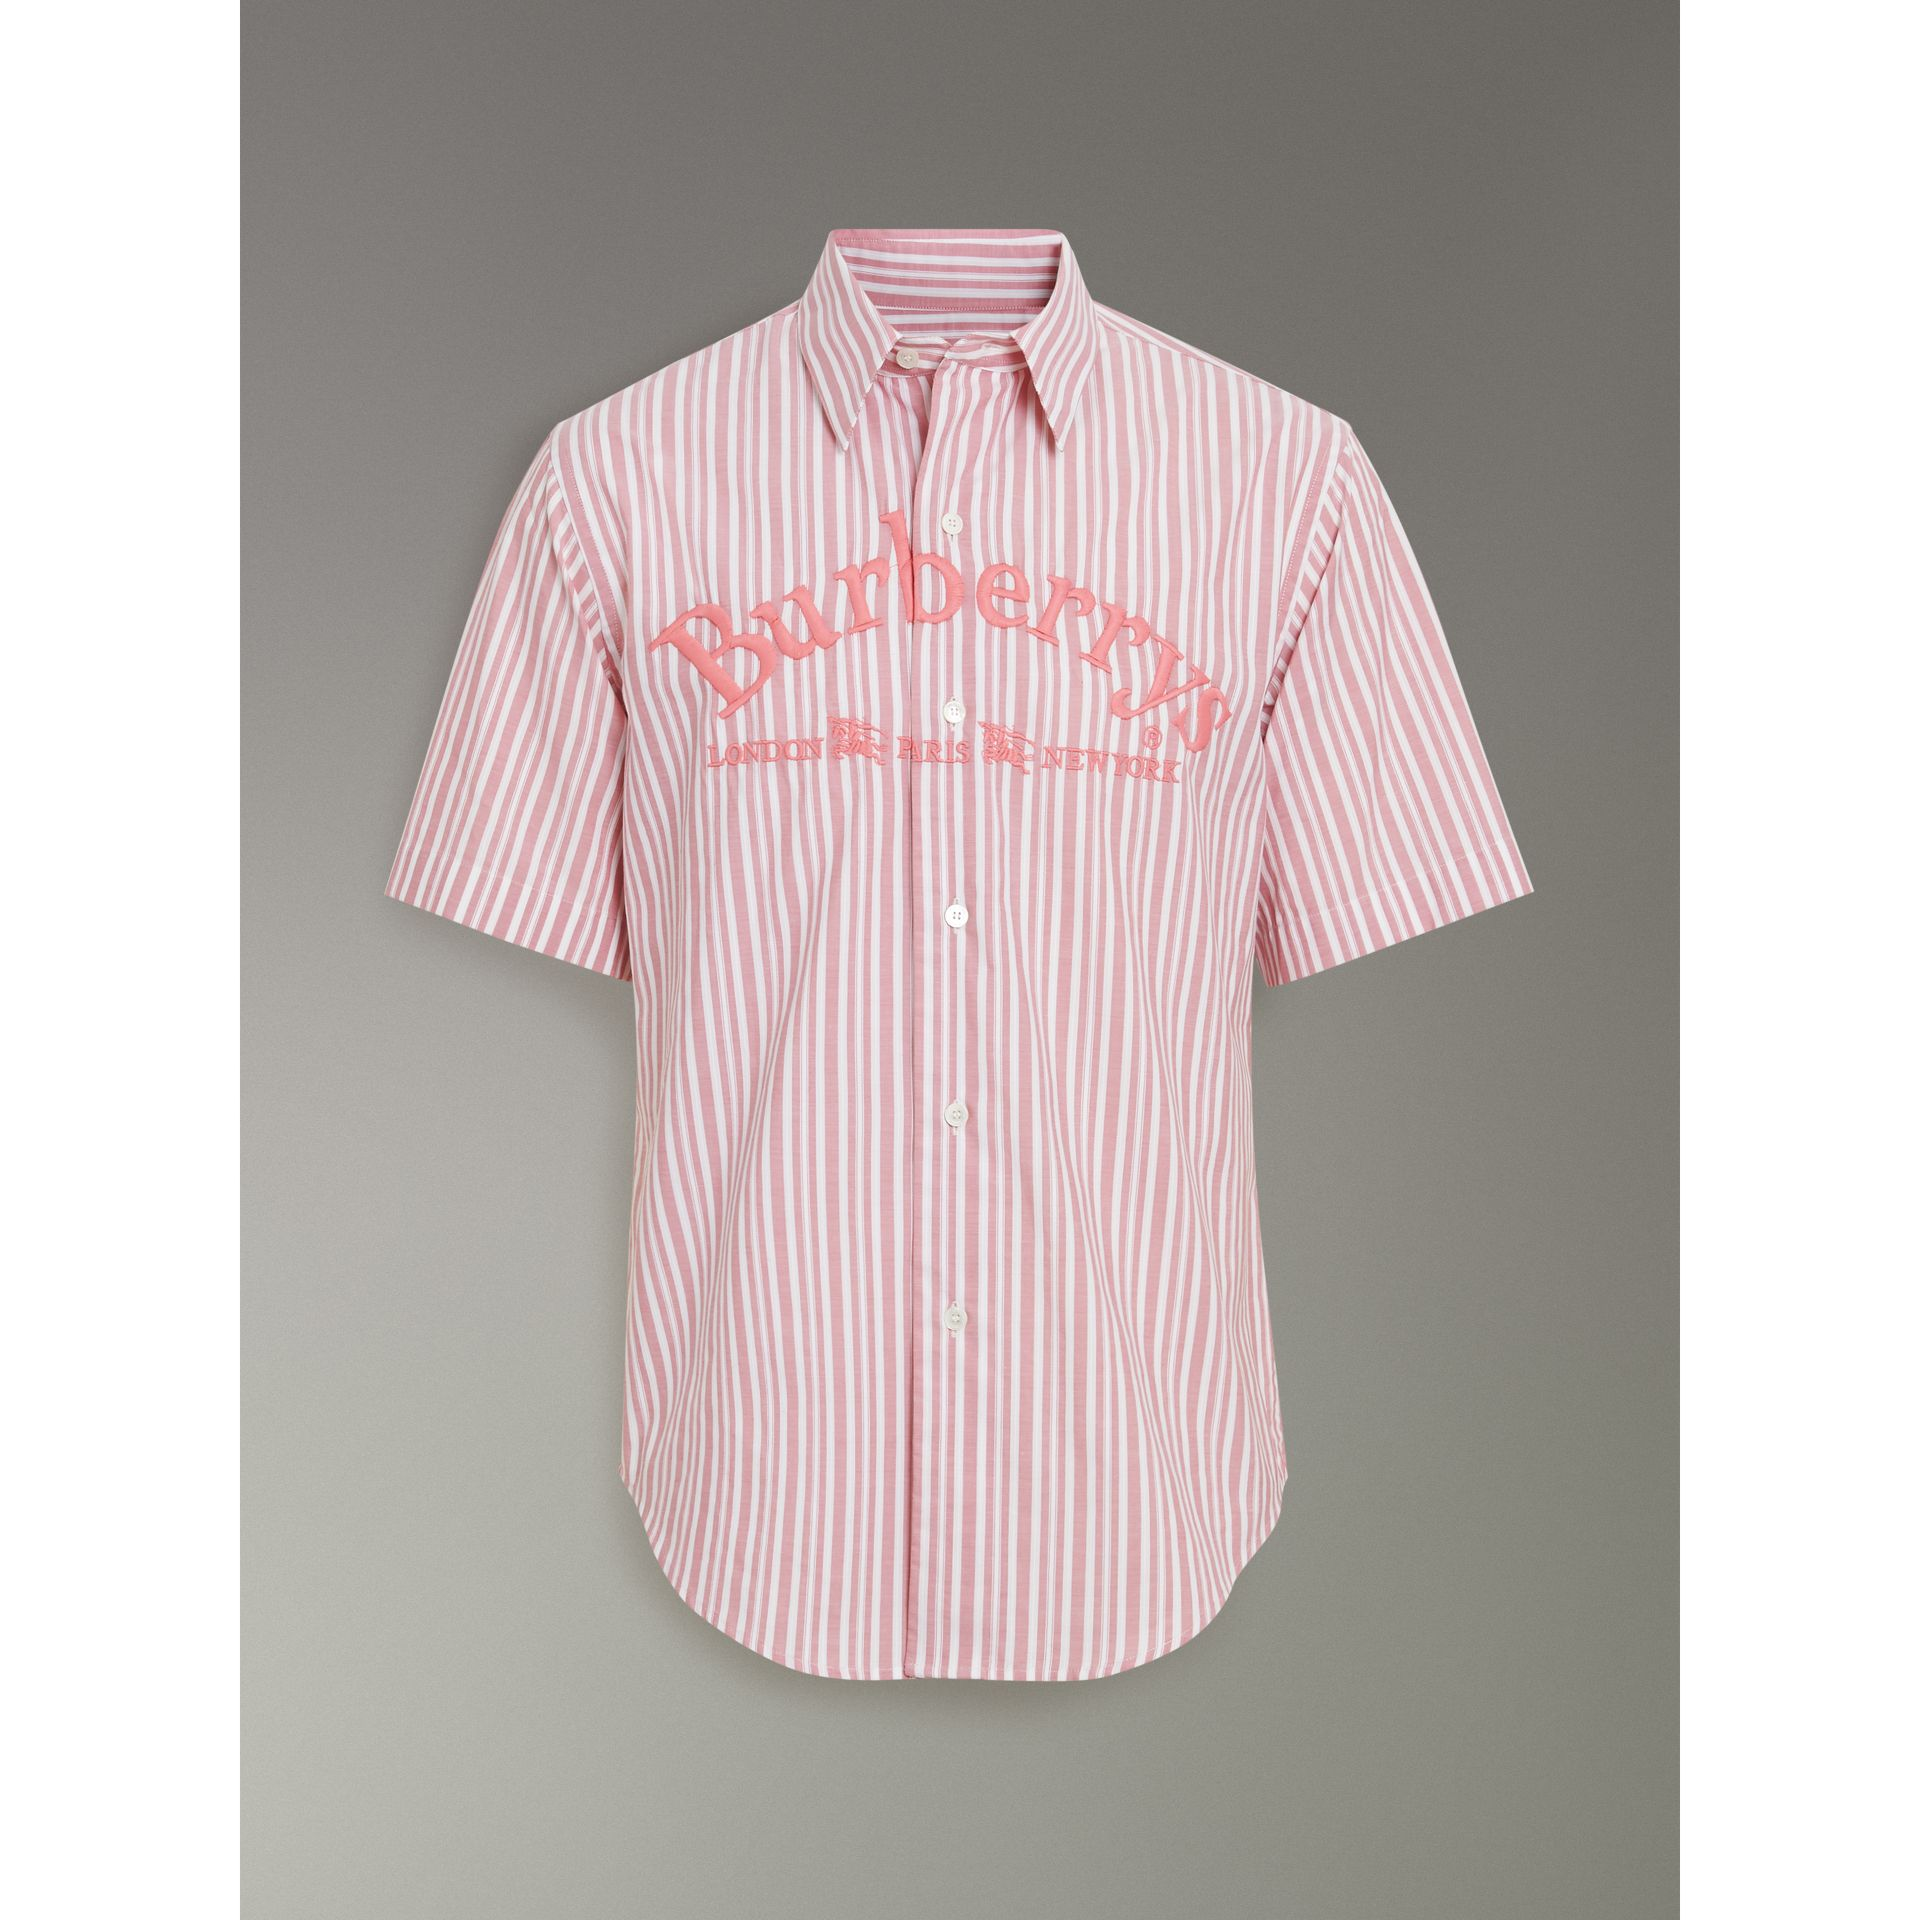 Embroidered Archive Logo Striped Short-sleeve Shirt in Light Pink - Men | Burberry Australia - gallery image 3